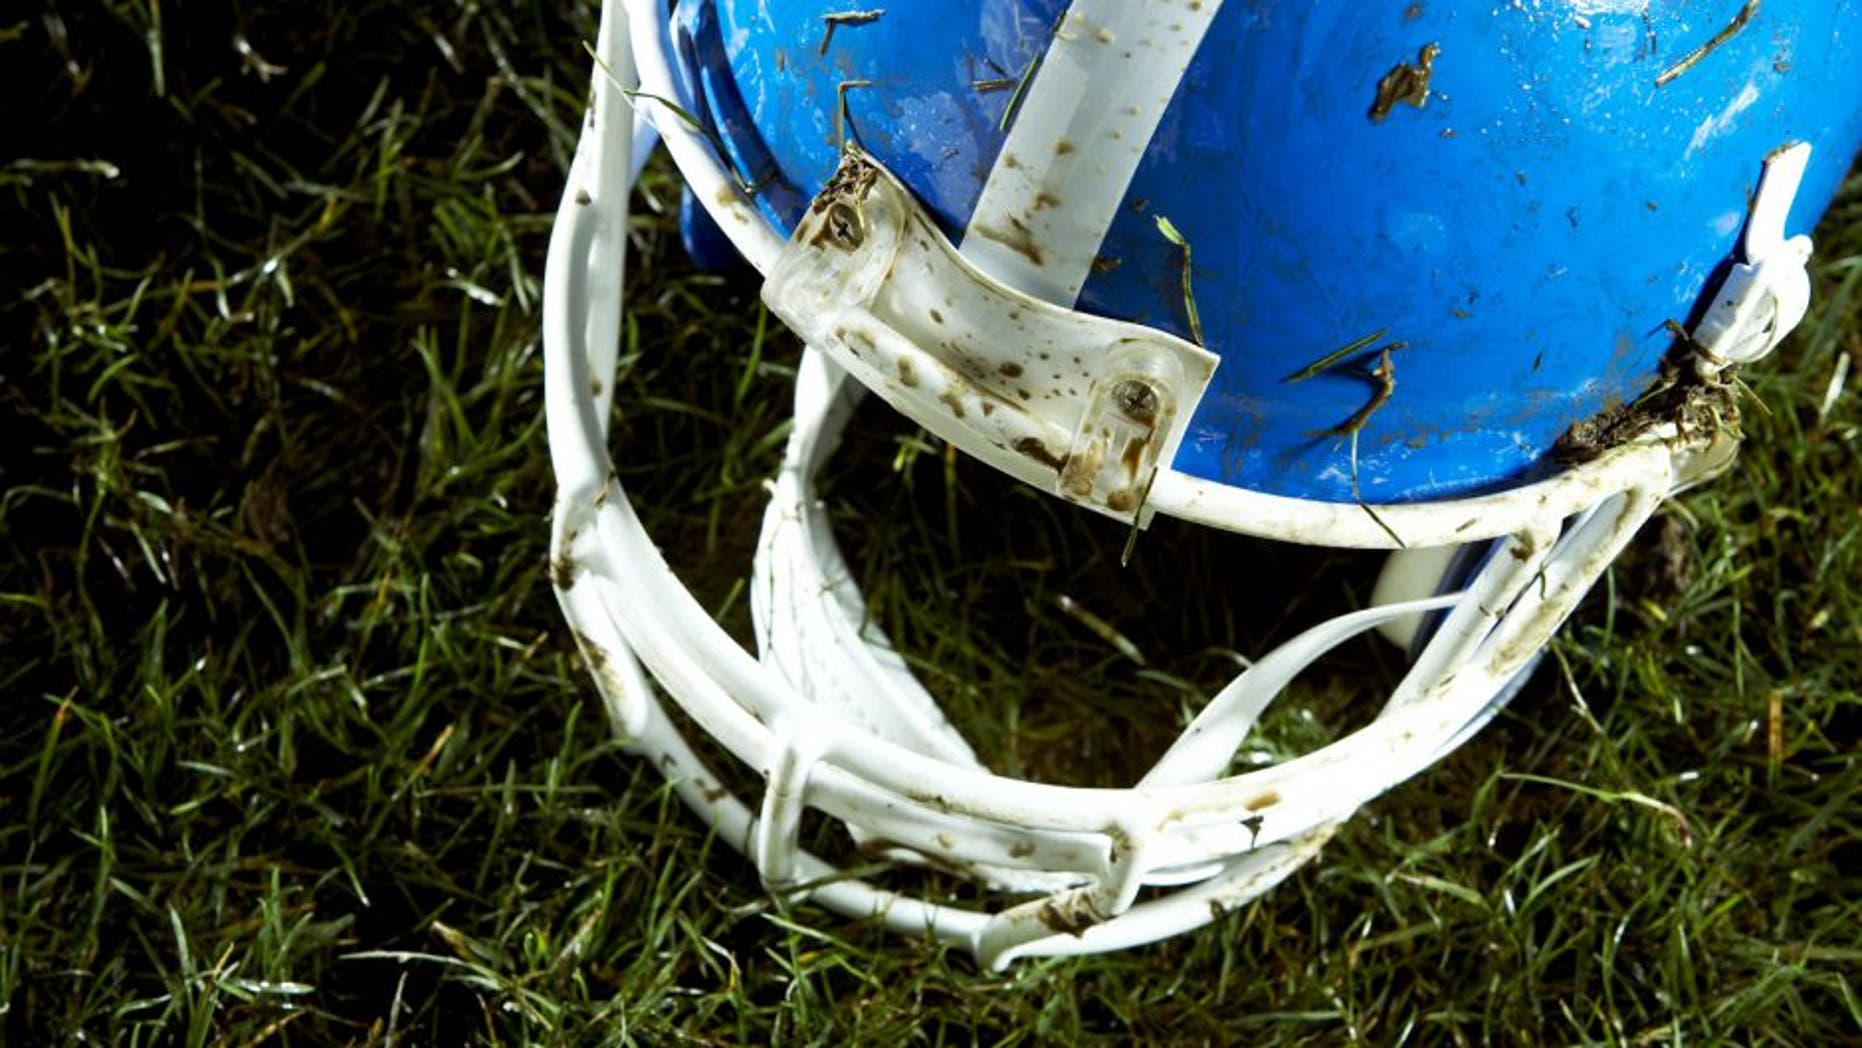 Football helmet on grass